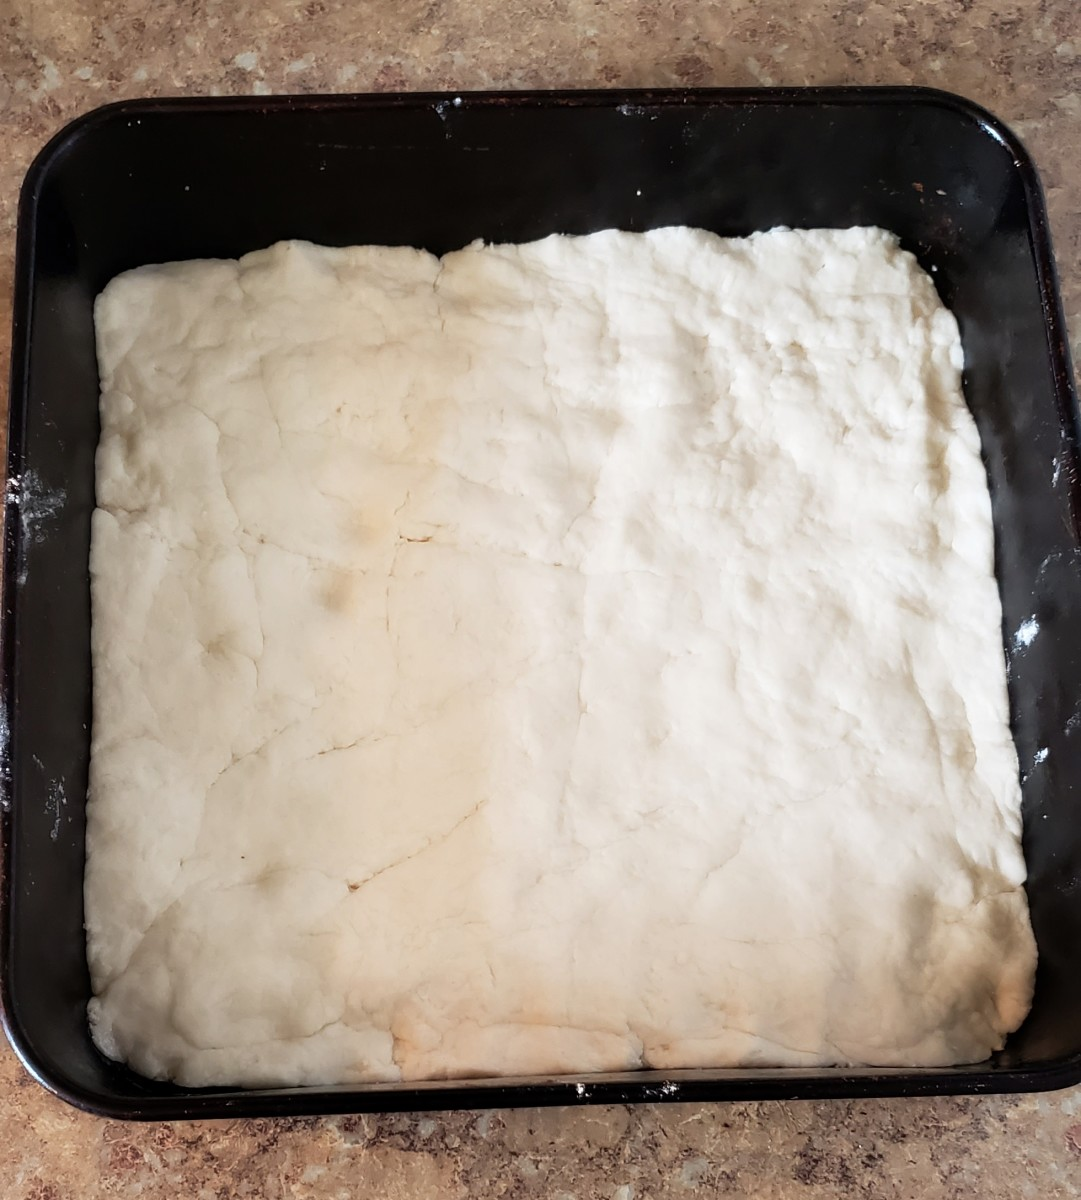 Spread dough into a greased 9x9 baking pan.